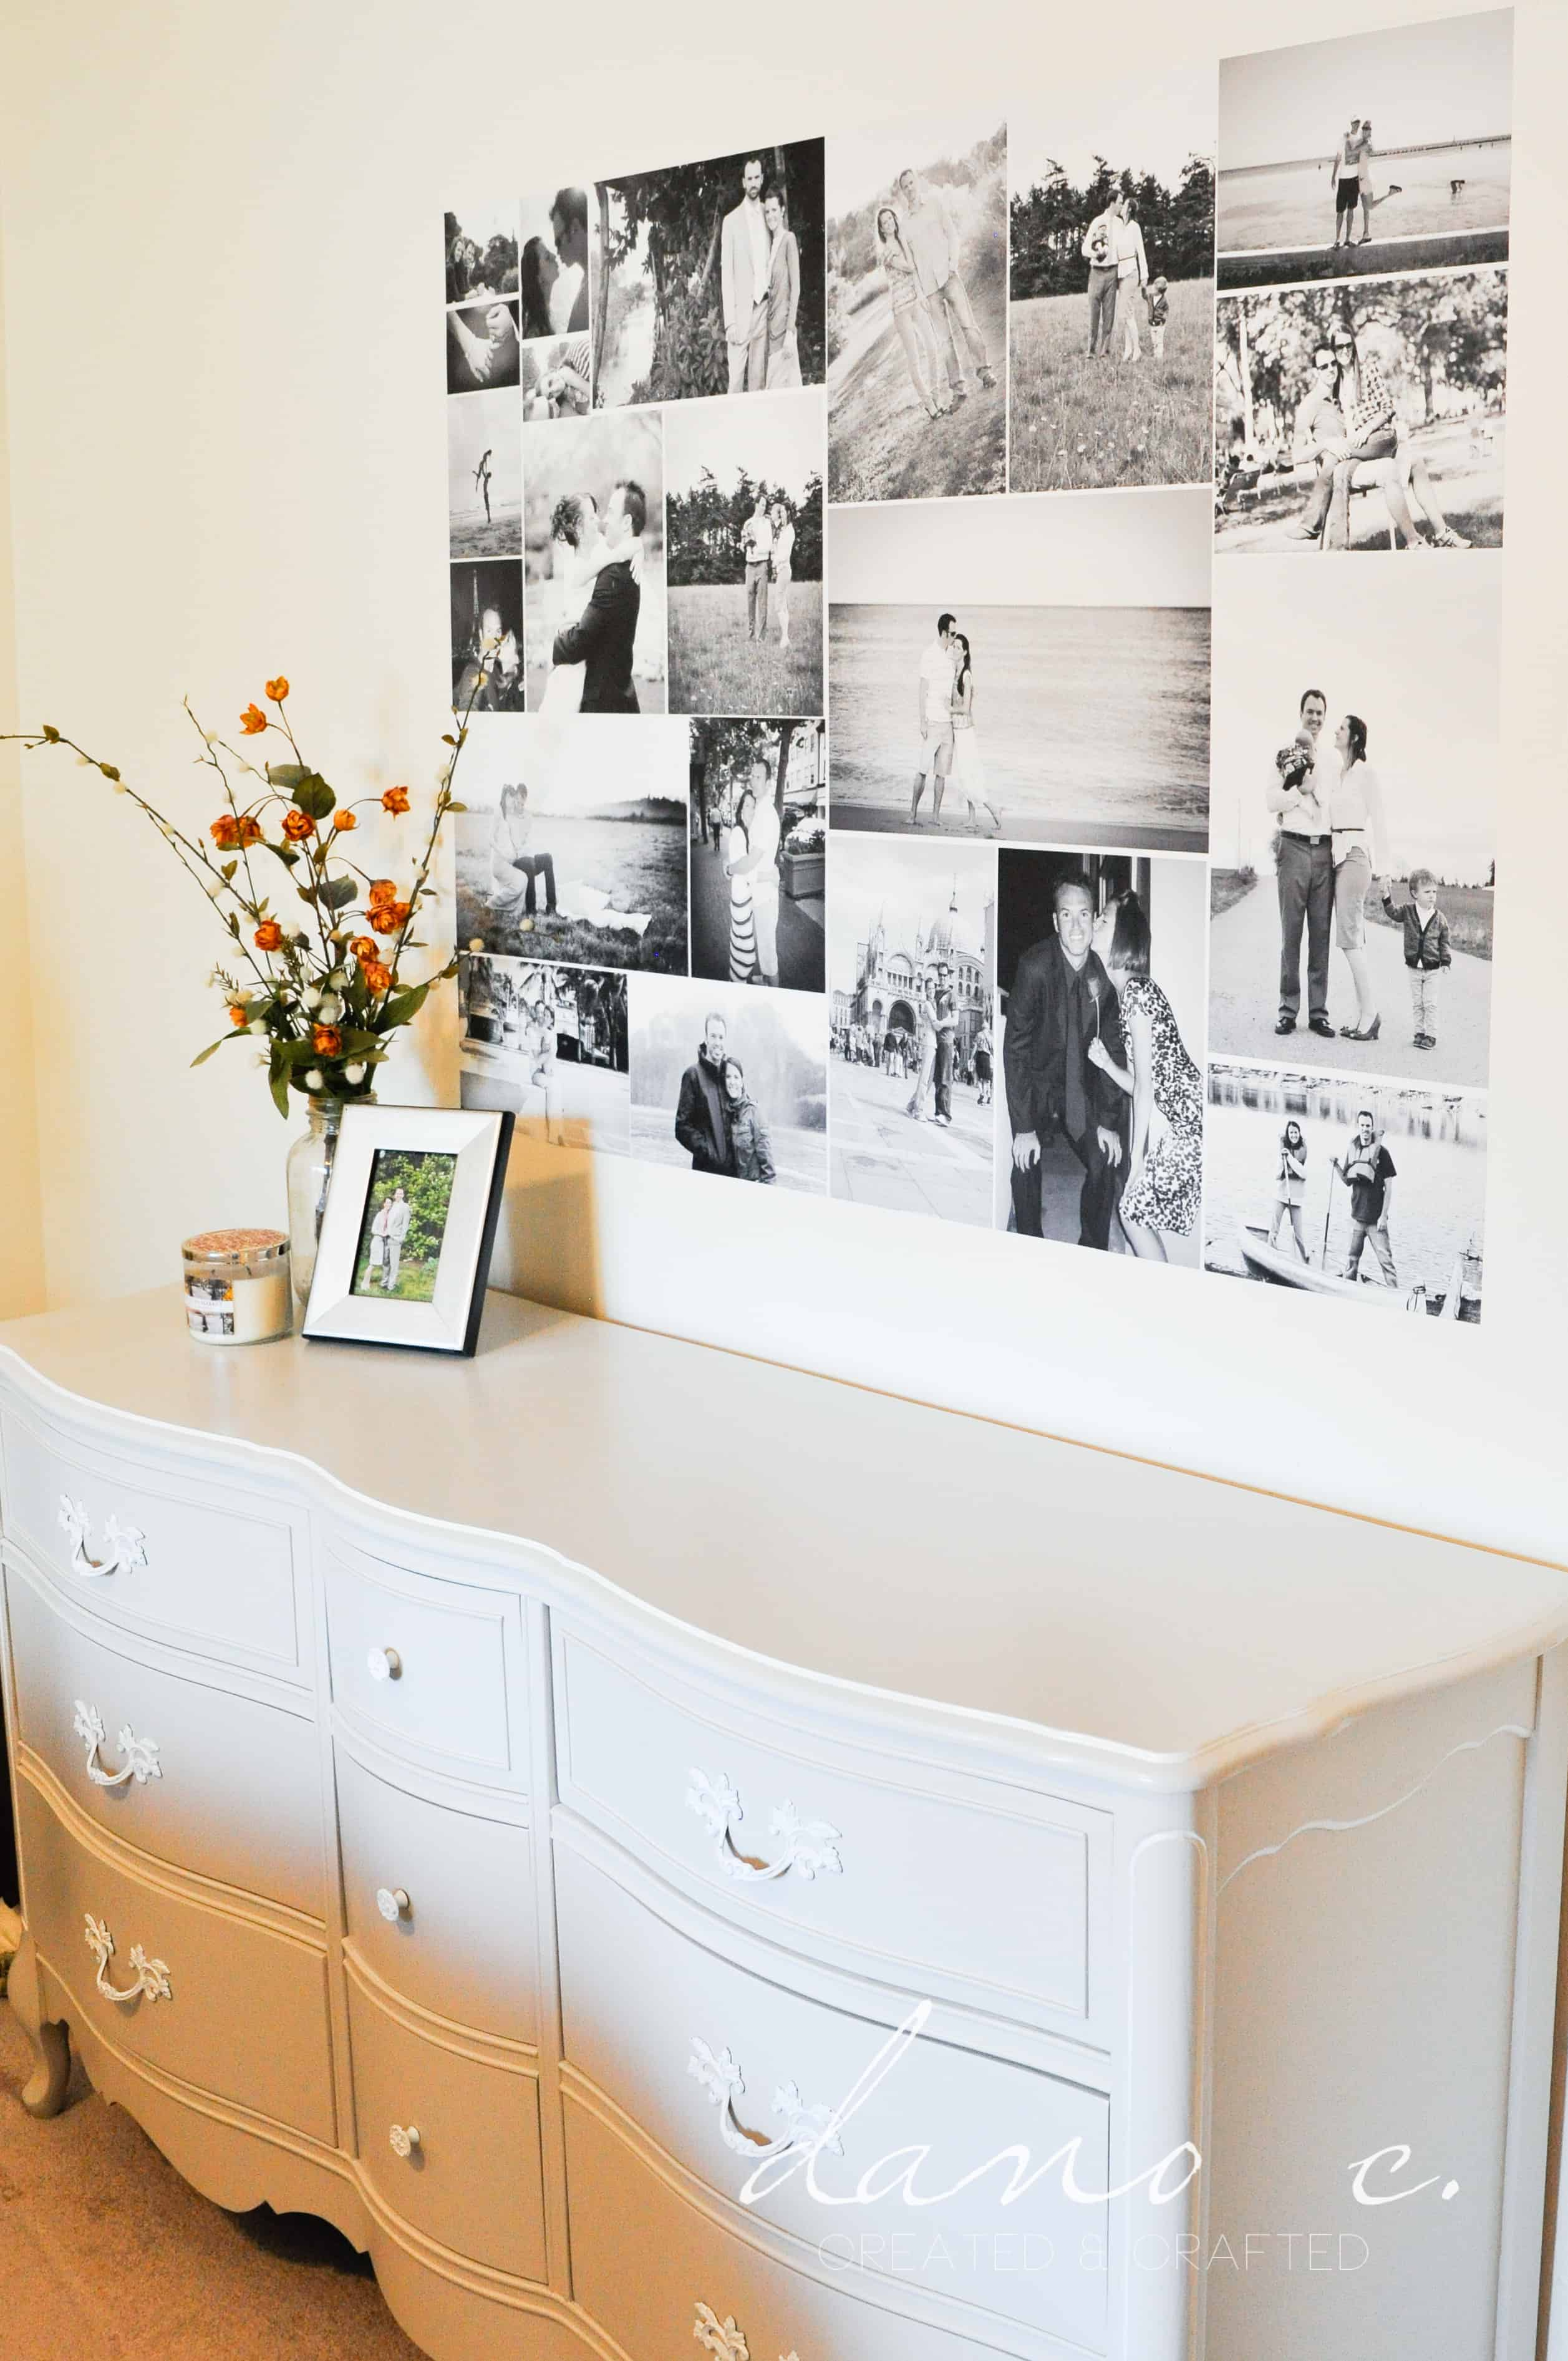 Adding A Wall To A Room How To Turn A Photo Collage Into A Removable Wall Adhesive